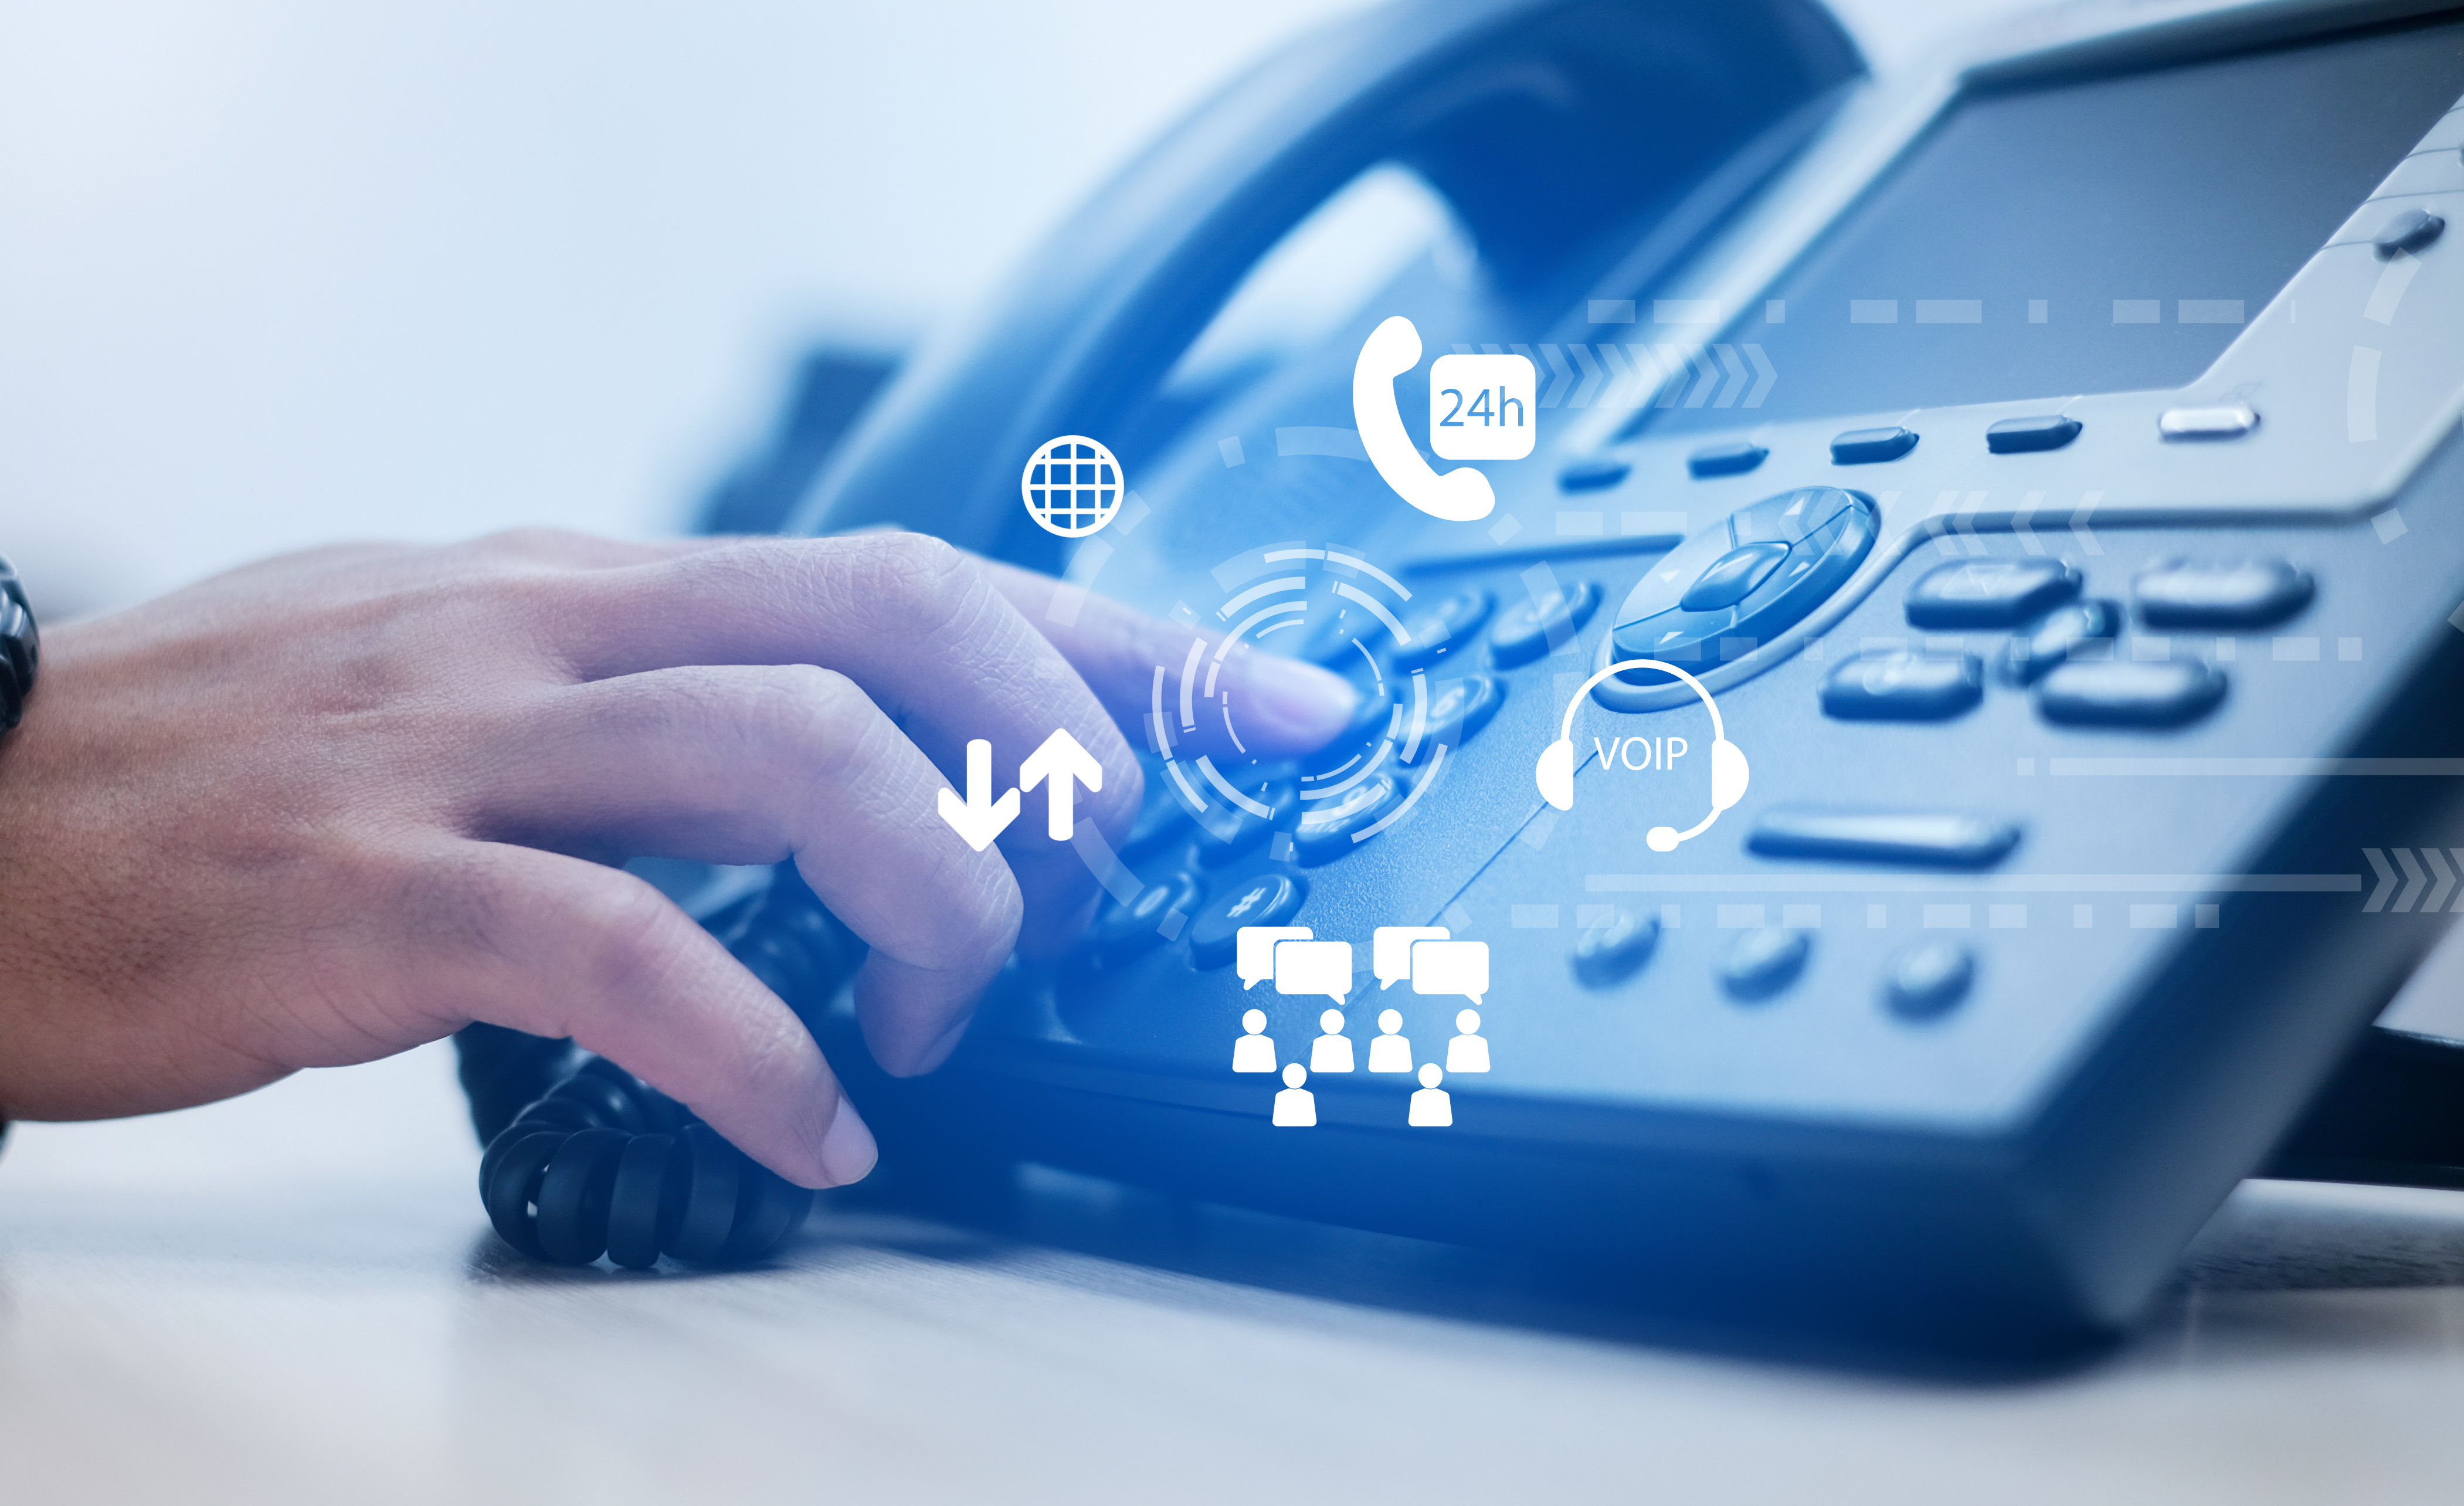 Busting the myths about VoIP and Hosted Voice